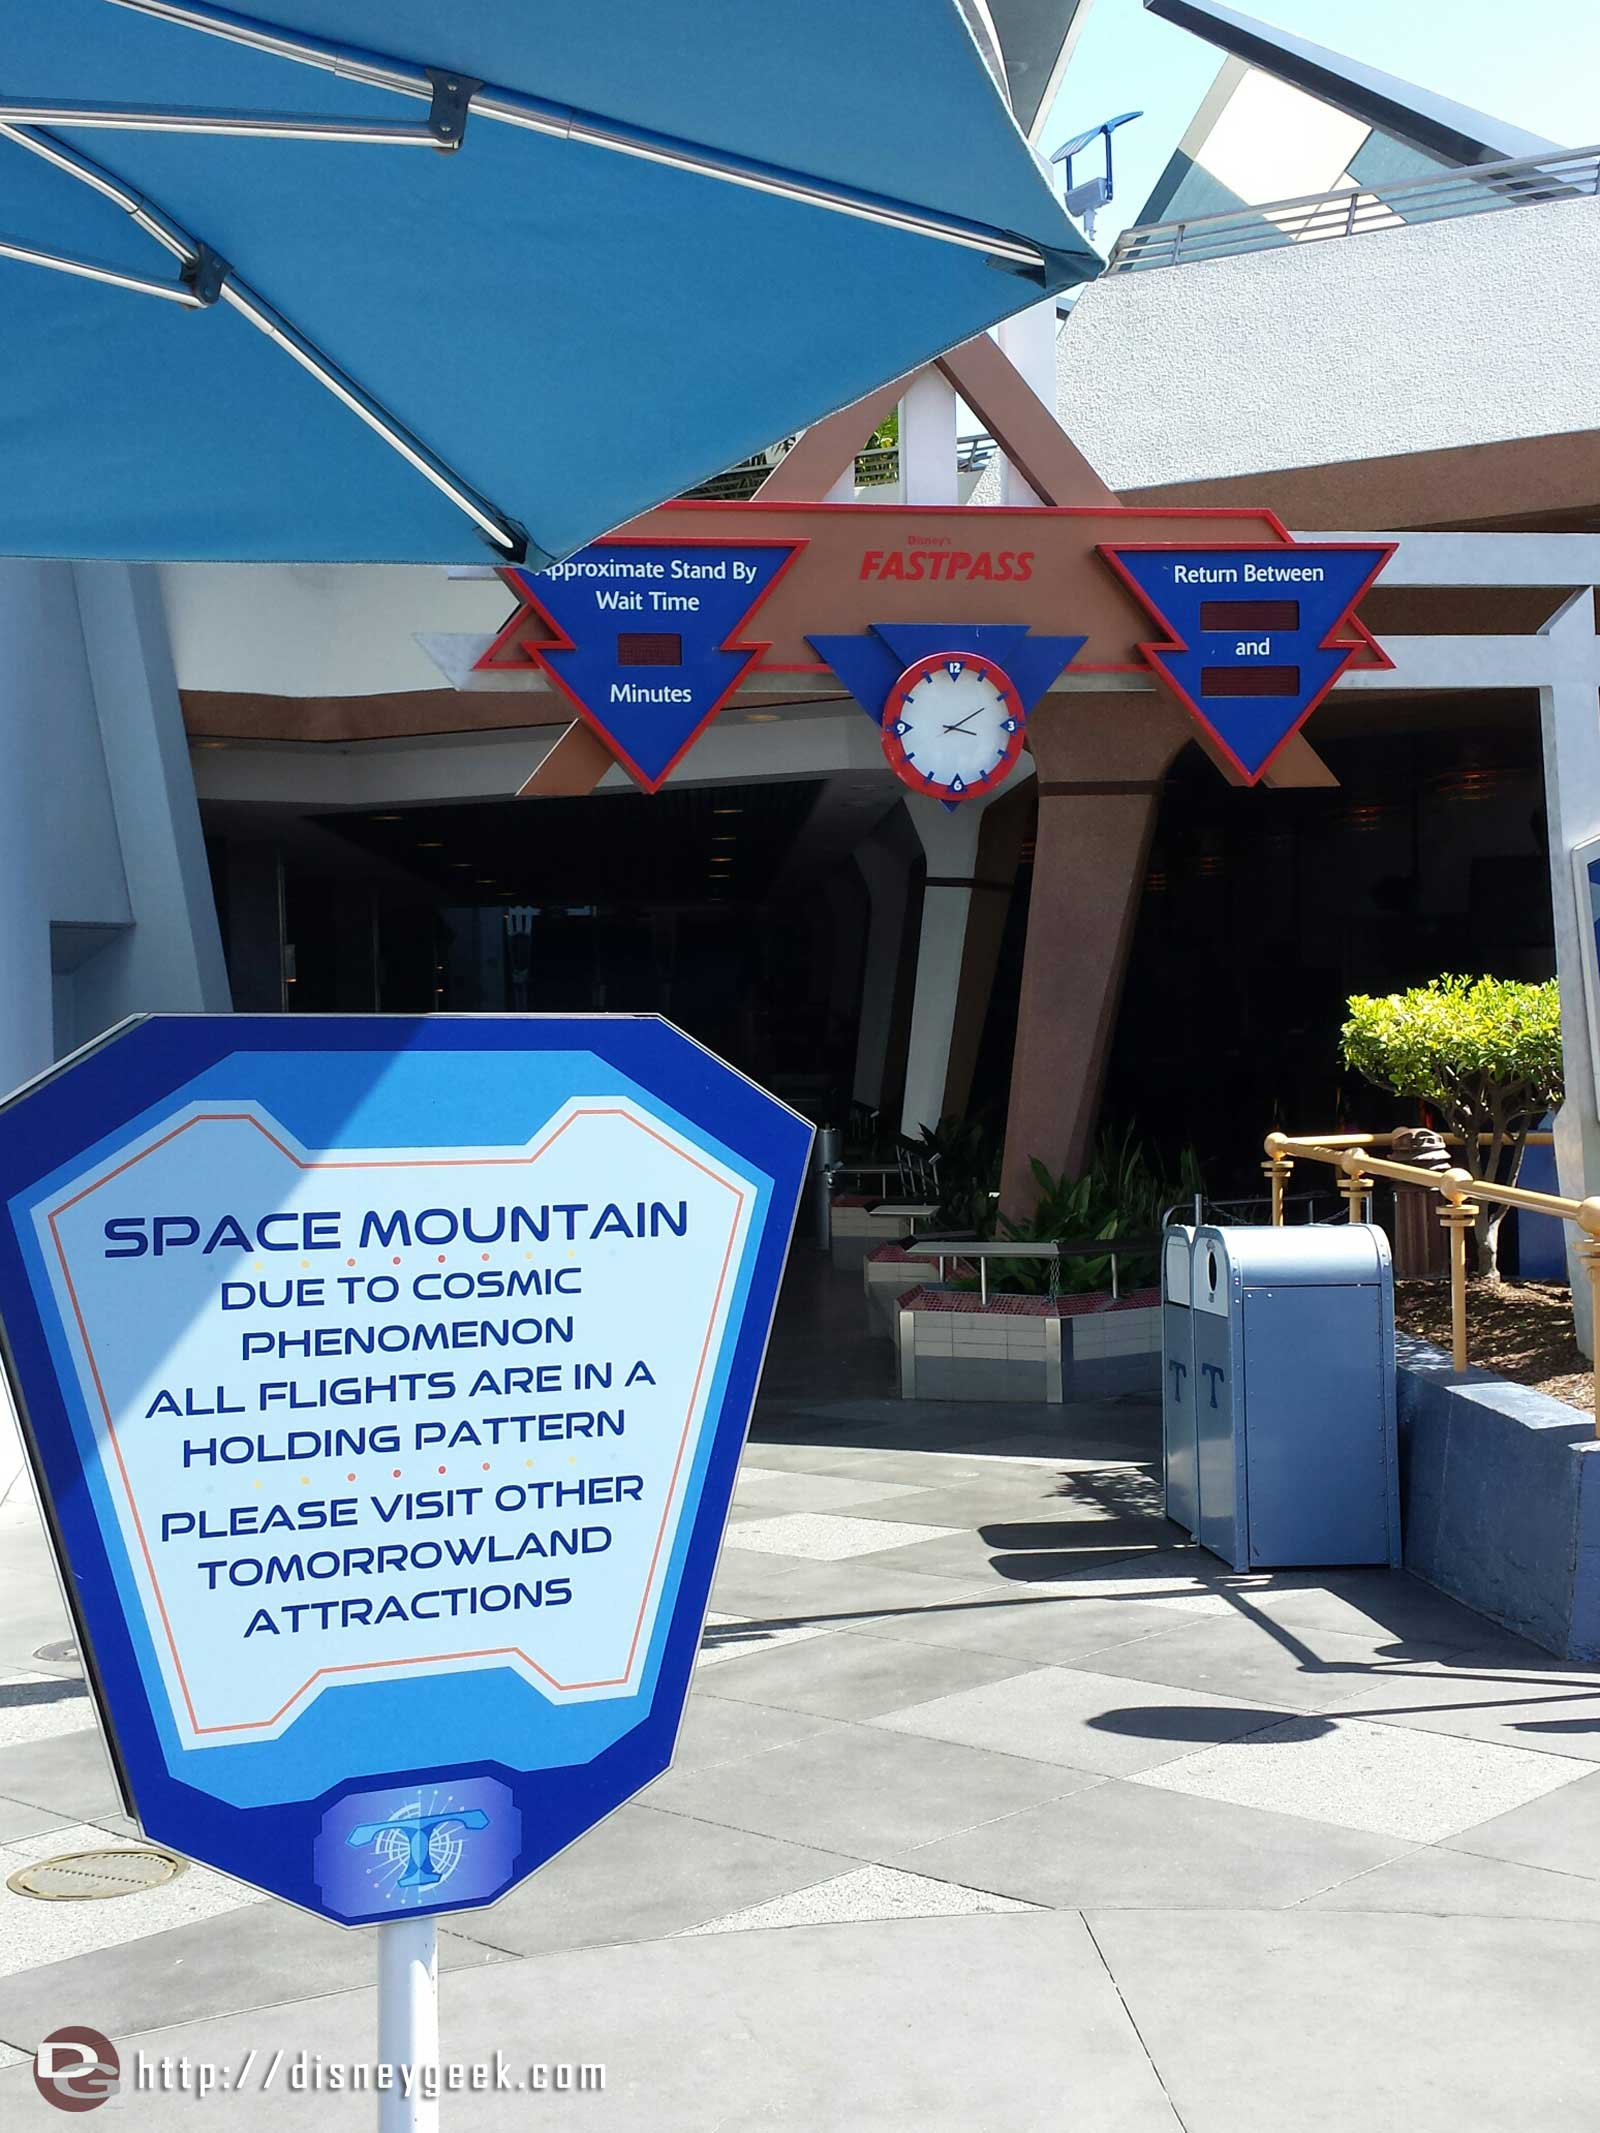 Space Mountain is closed until July